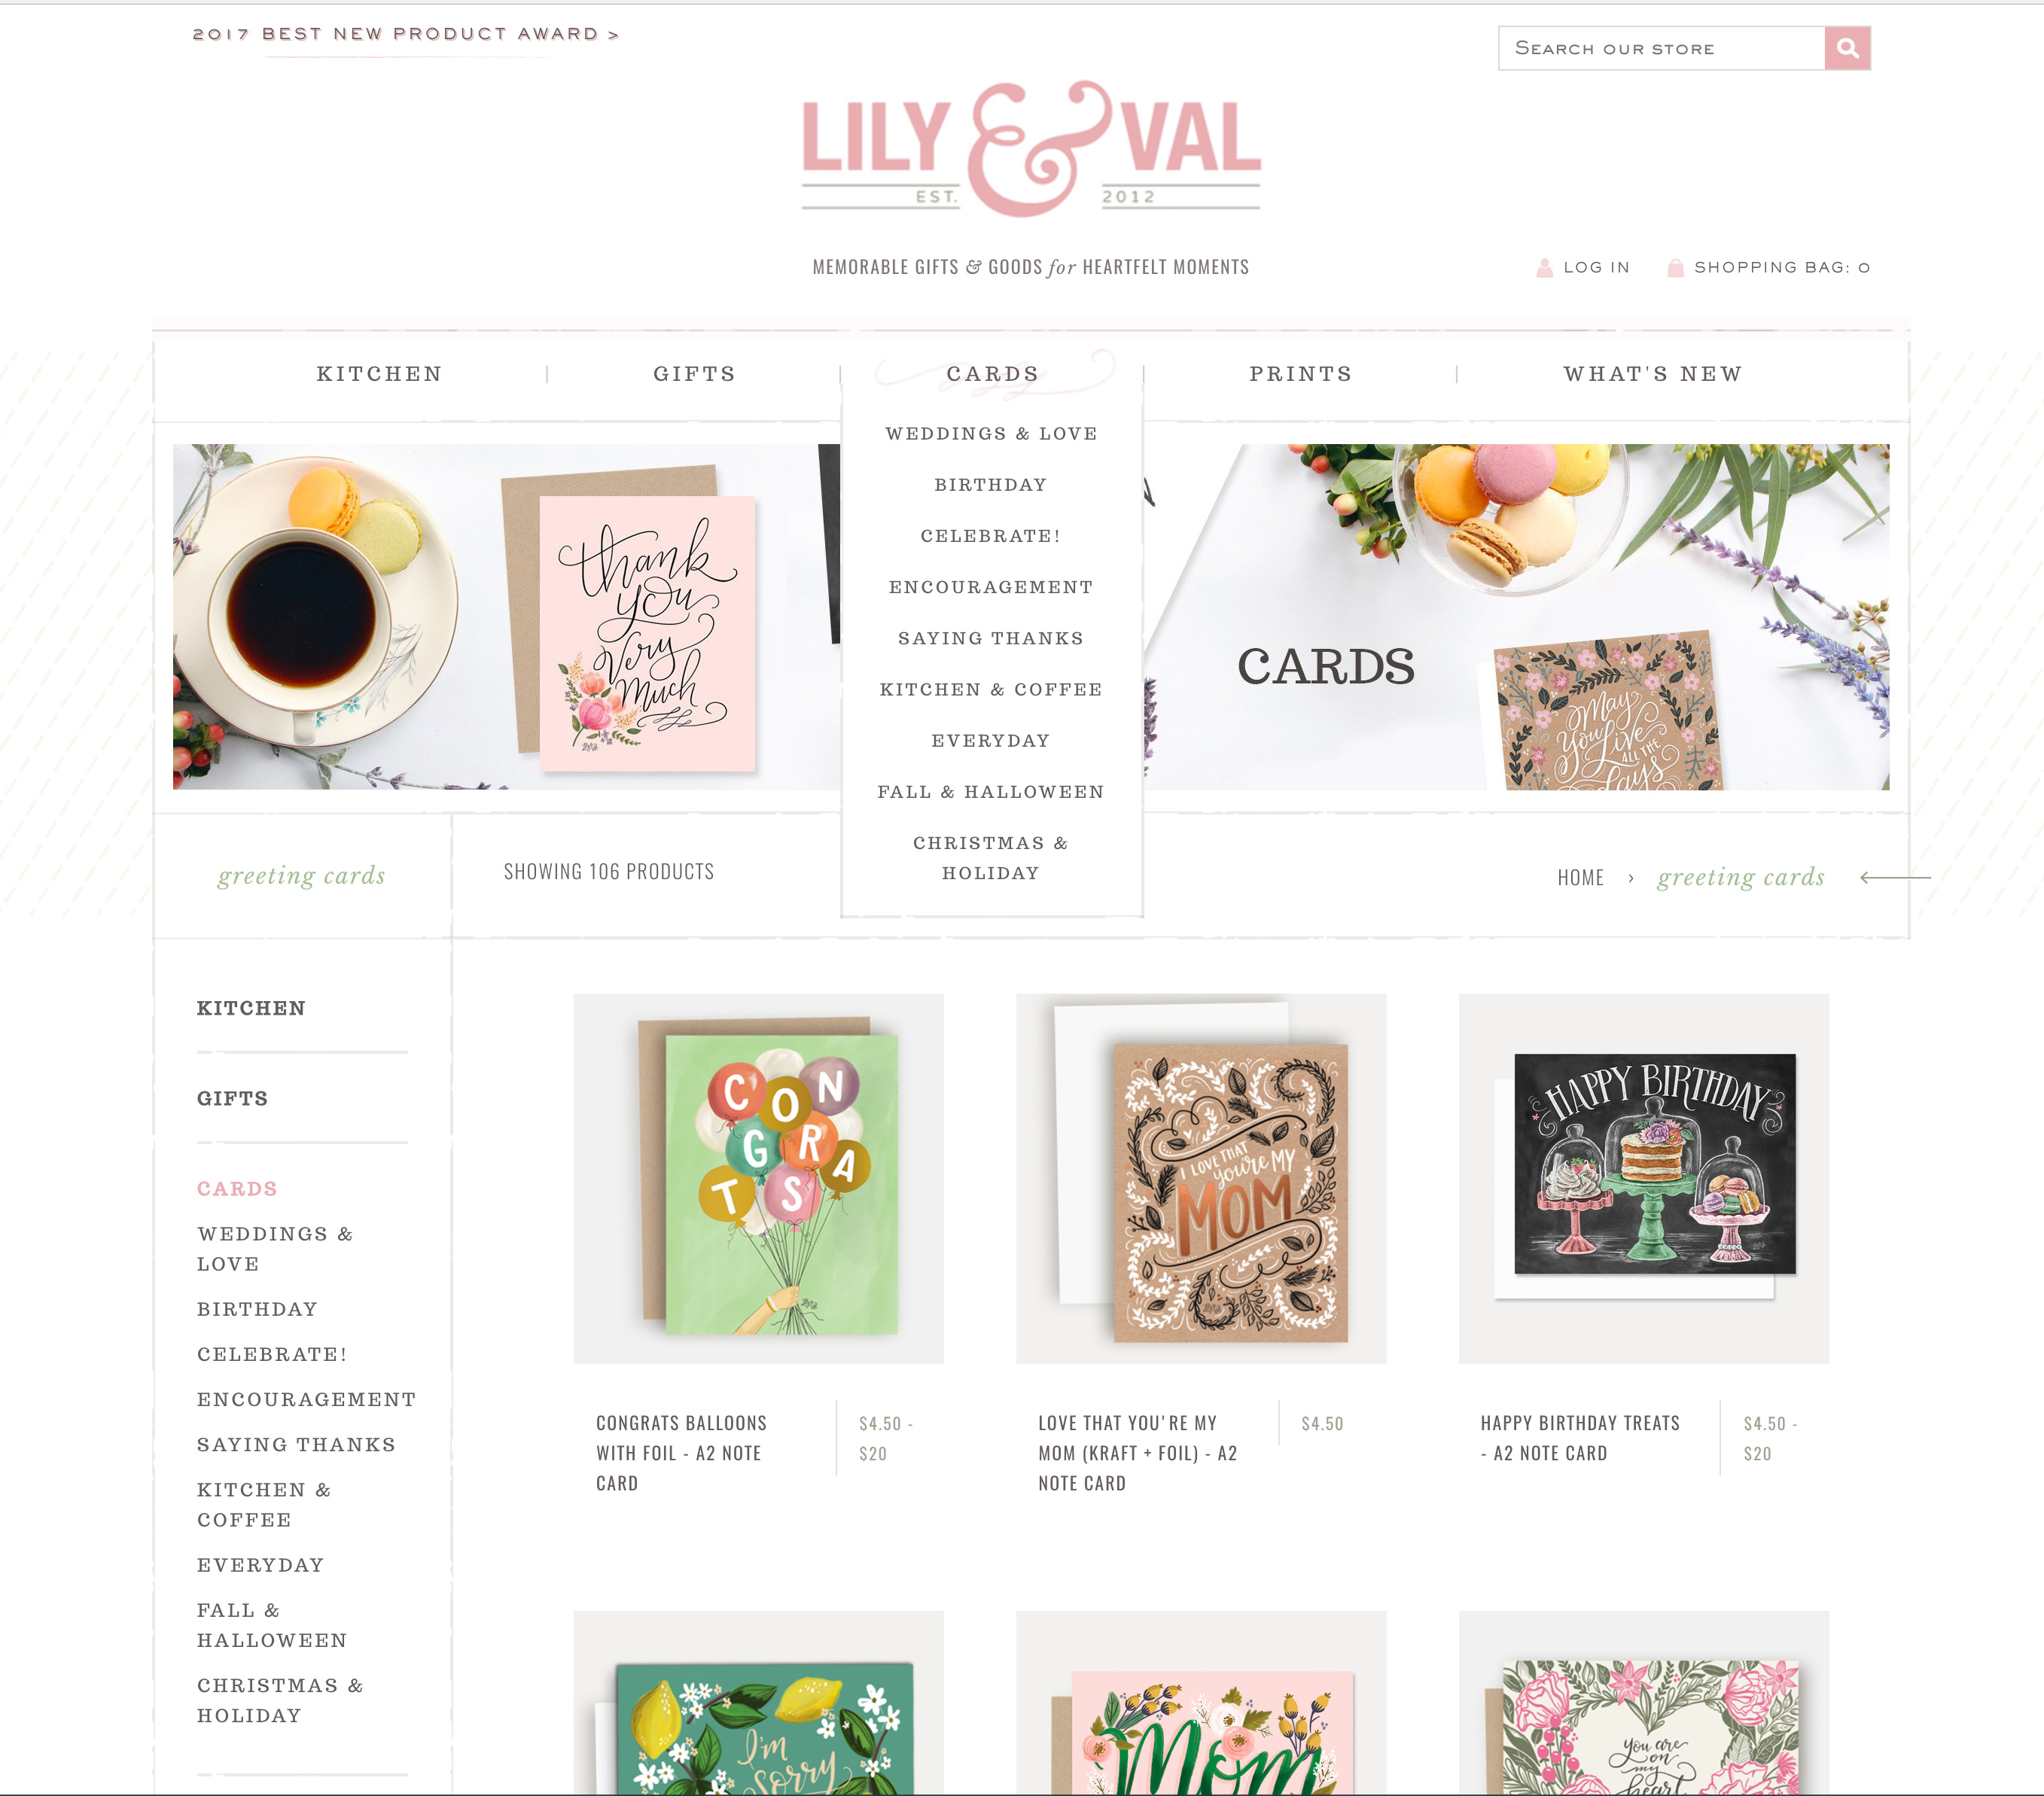 Welcome to the brand new lilyandval.com. Memorable gifts and goods for heartfelt moments